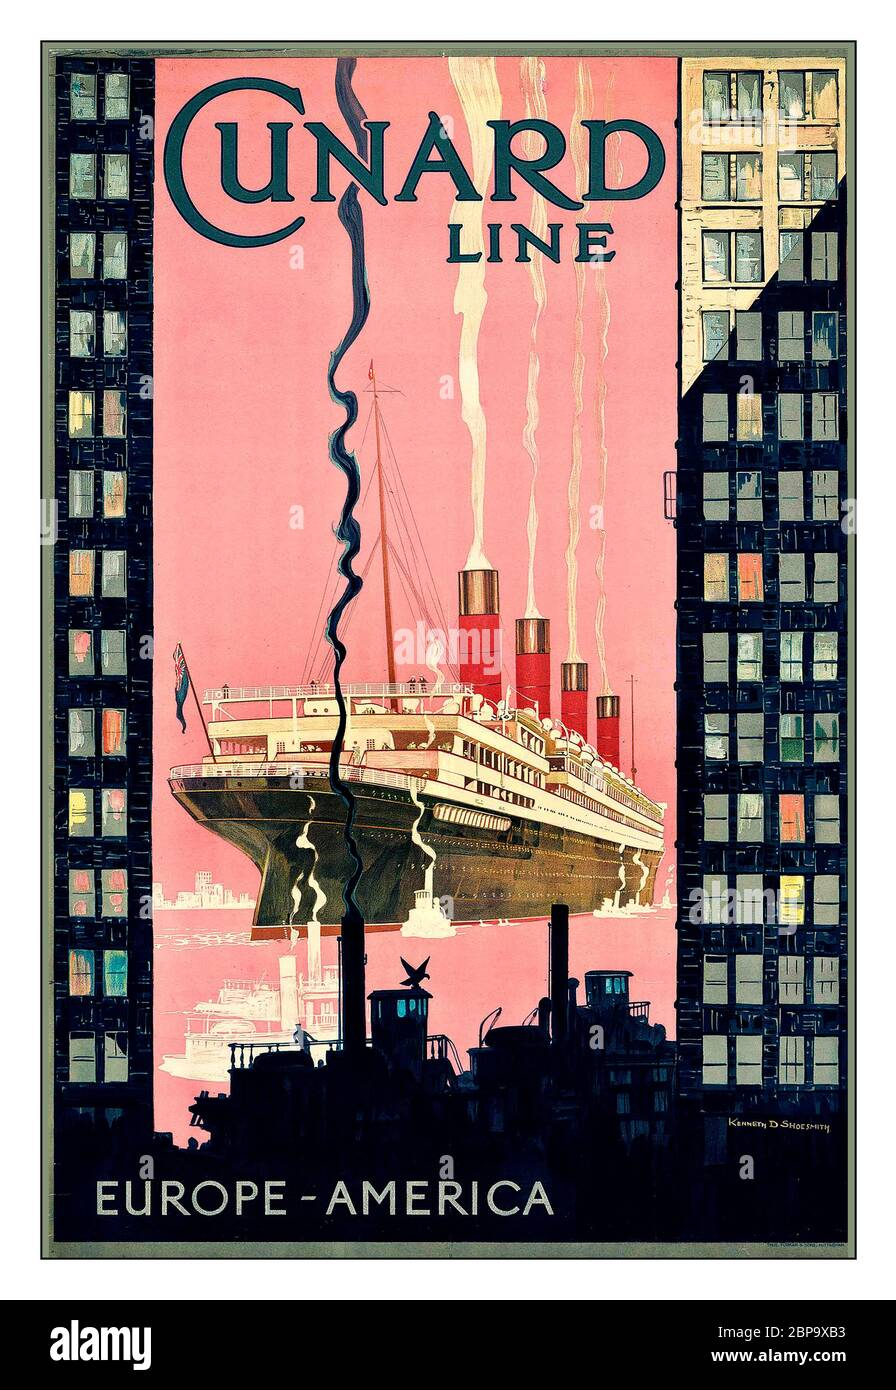 Vintage 1920 S Travel Cruising Poster Cunard Line Europe America Lithograph In Colours C 1925 By Kenneth Denton Shoesmith 1890 1939 Printed By Forman Sons Nottingham Stock Photo Alamy